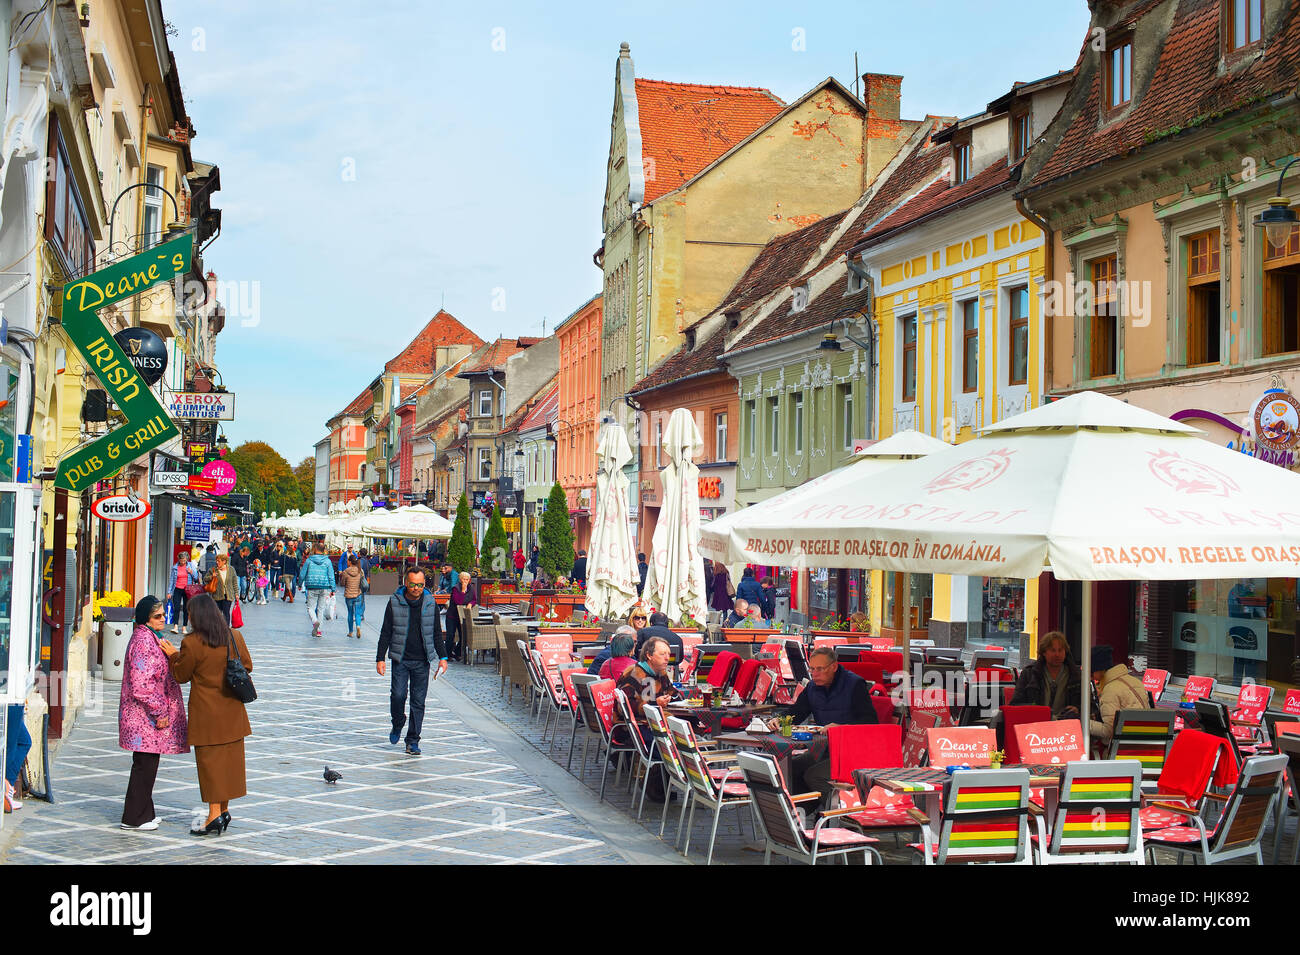 People on Old Town street of Brasov. Brasov is a city in Romania and the administrative centre of Brasov County. - Stock Image